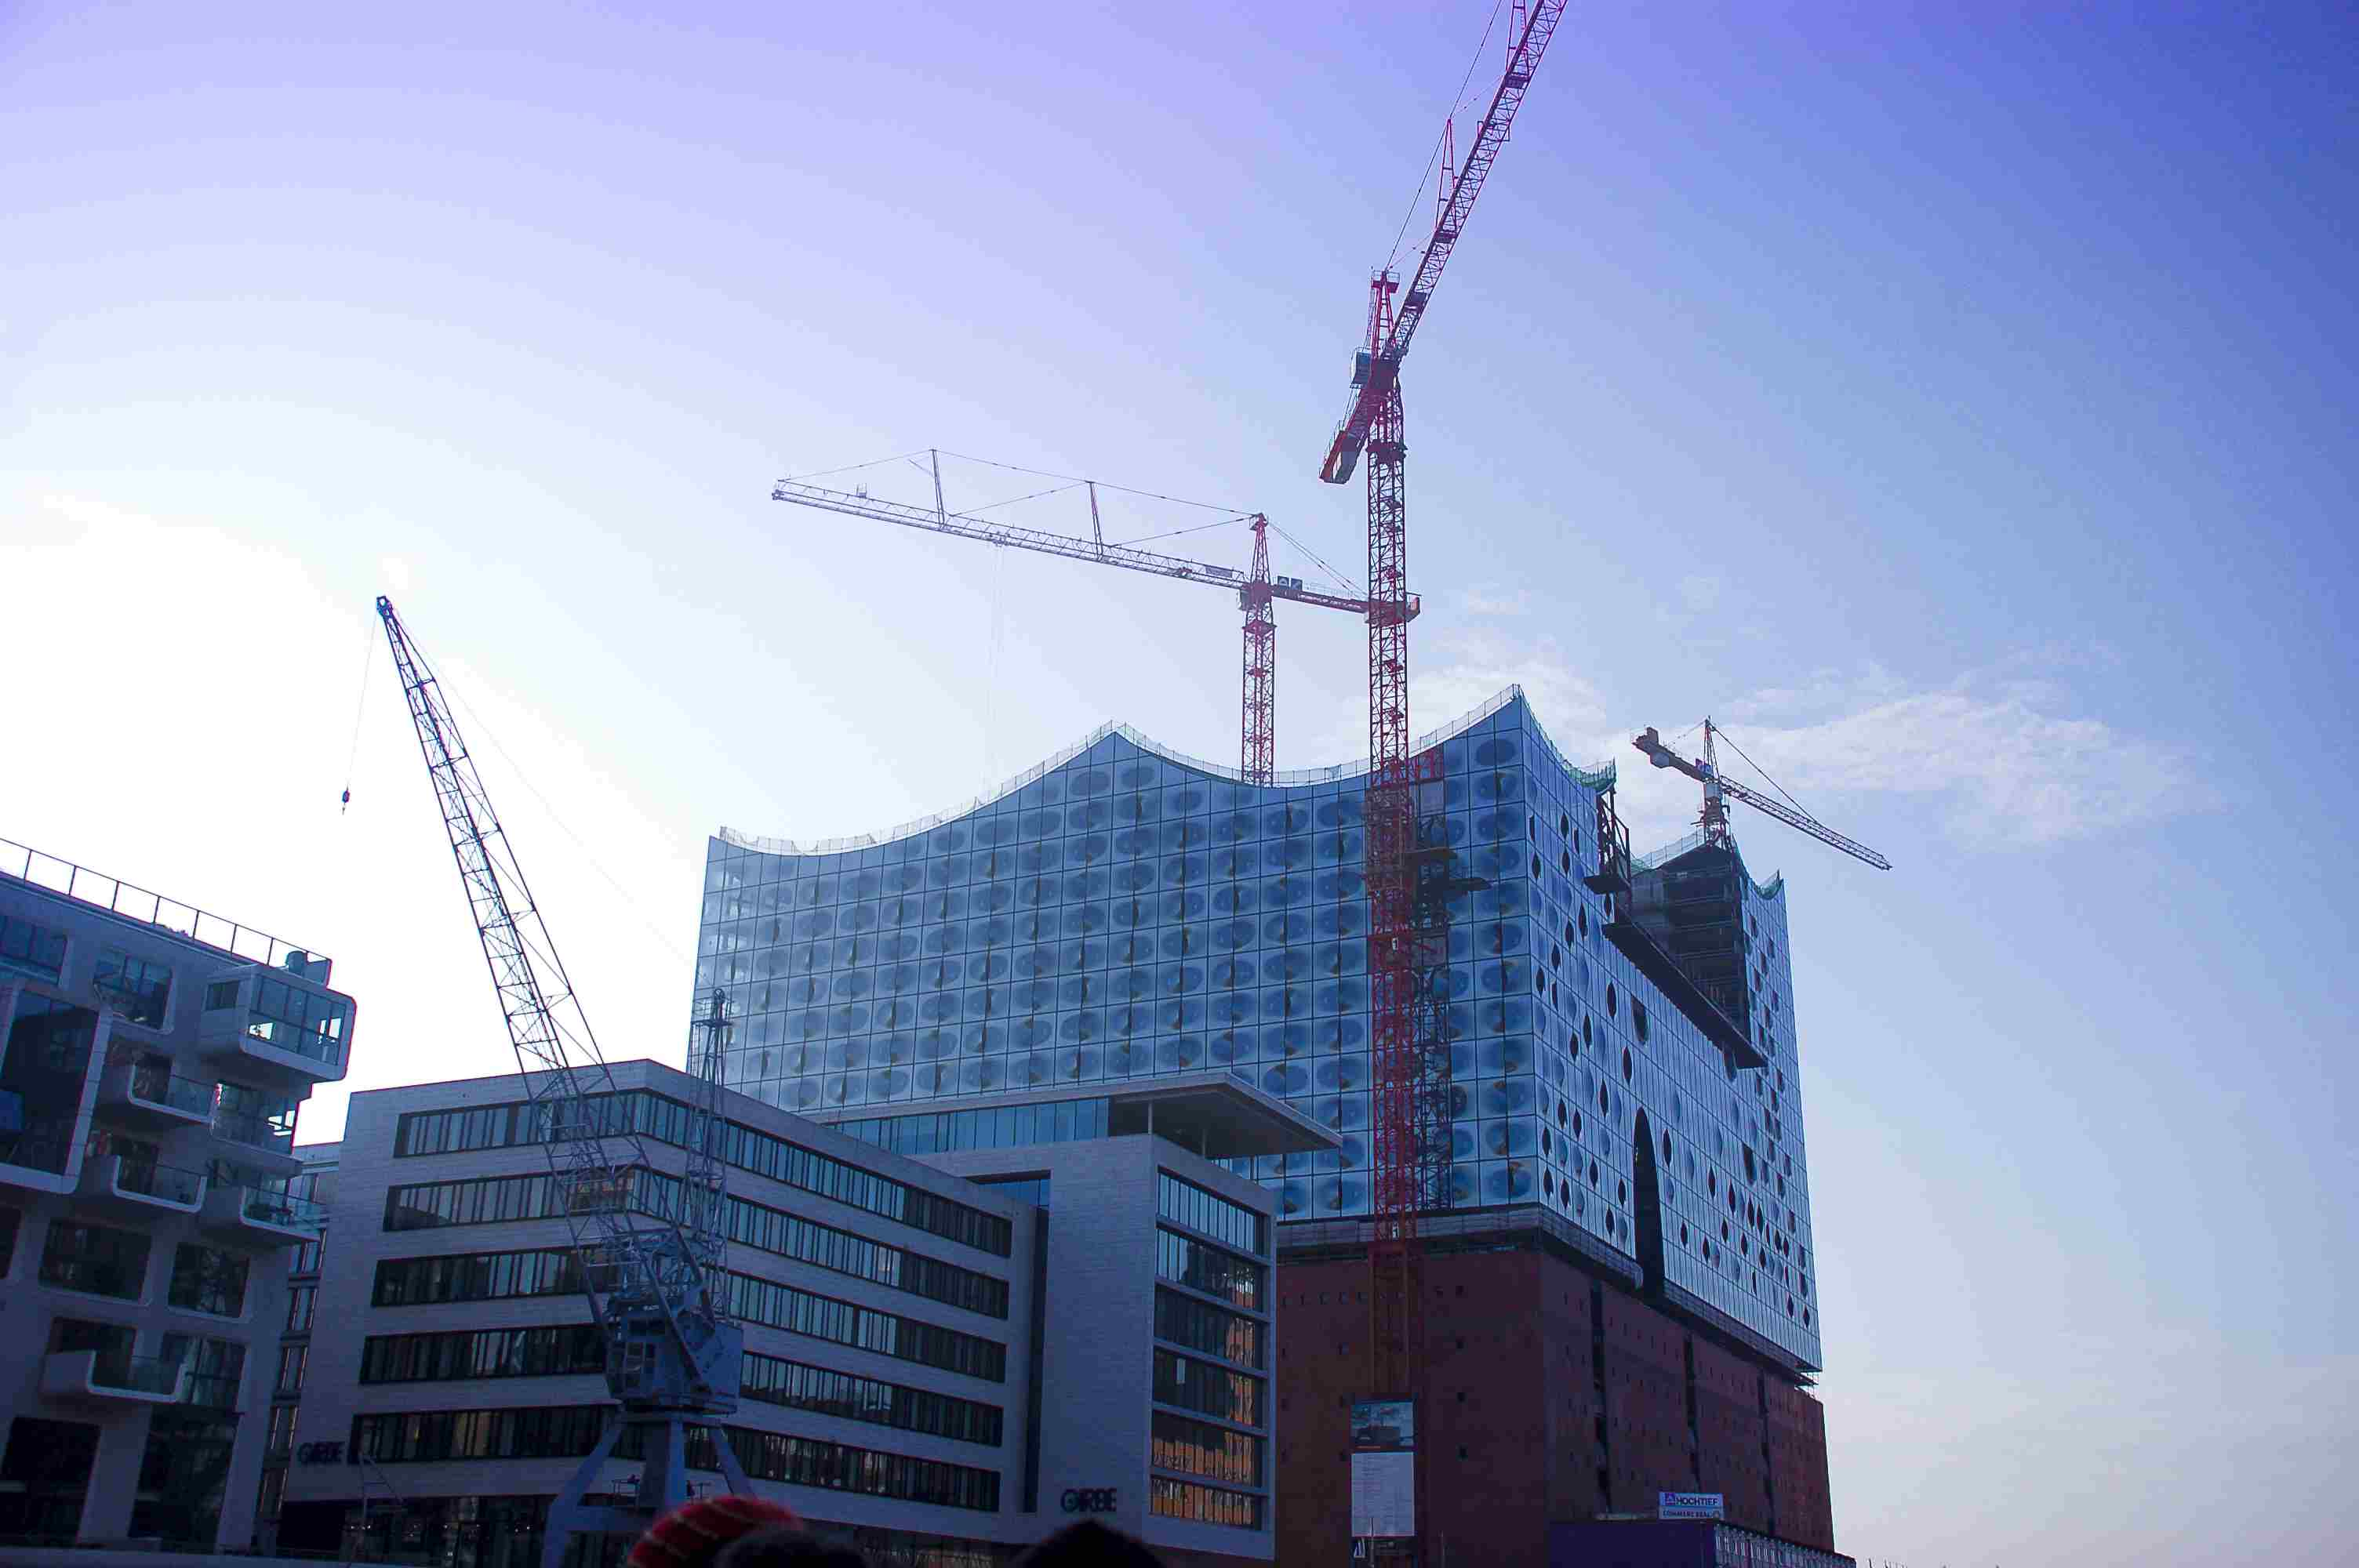 The opera house being built in Hafen City